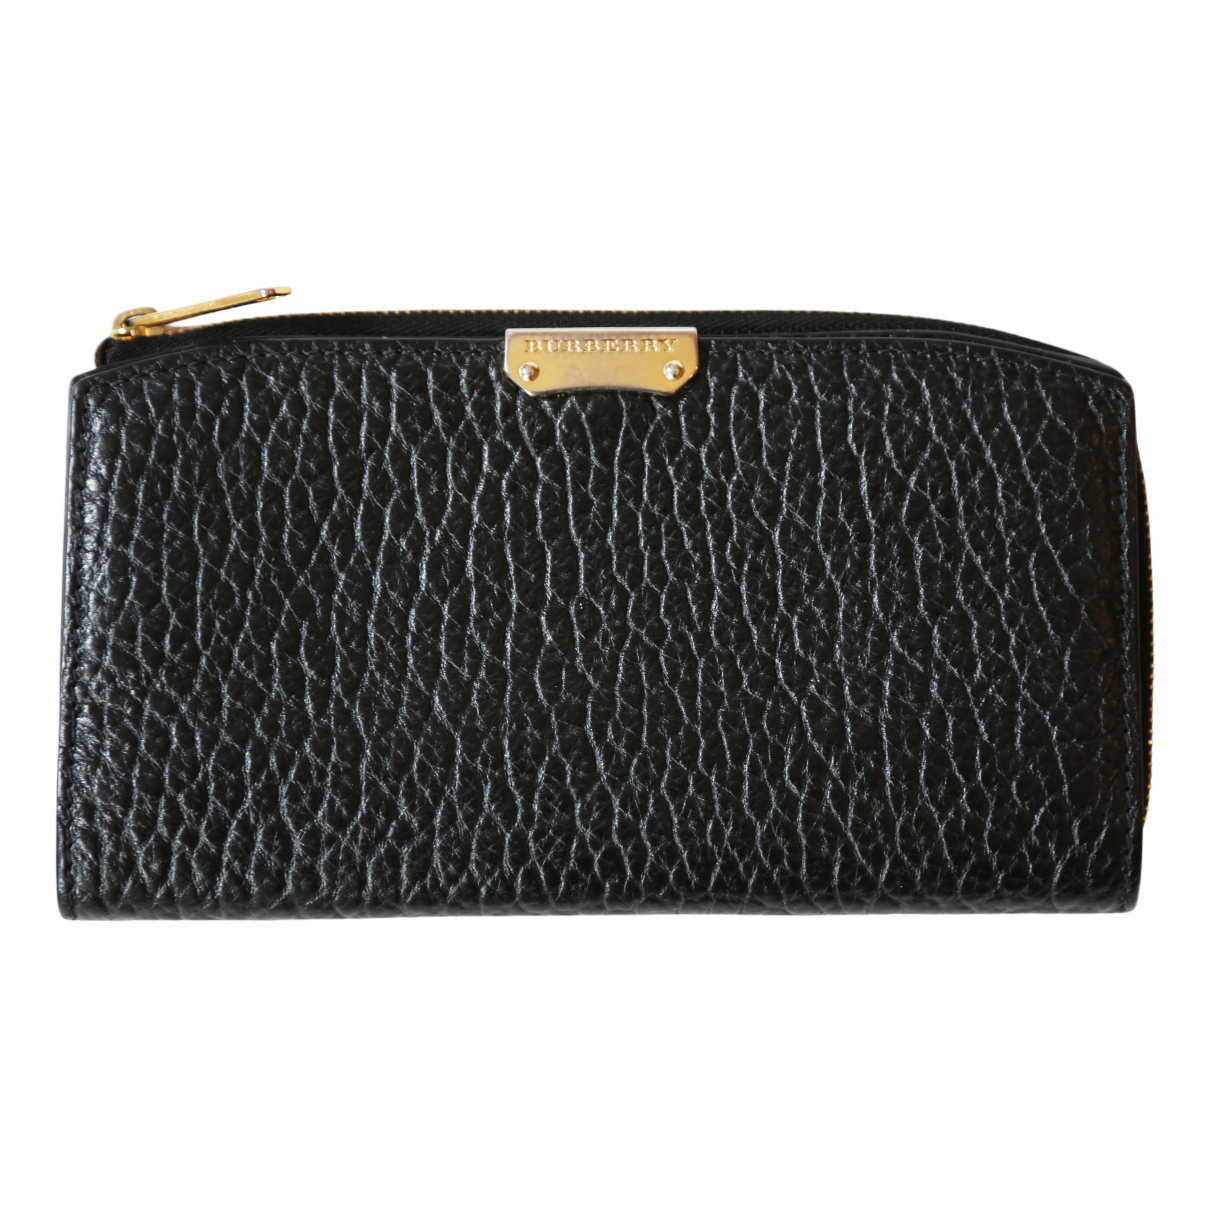 Burberry N Black Leather wallet for Women N